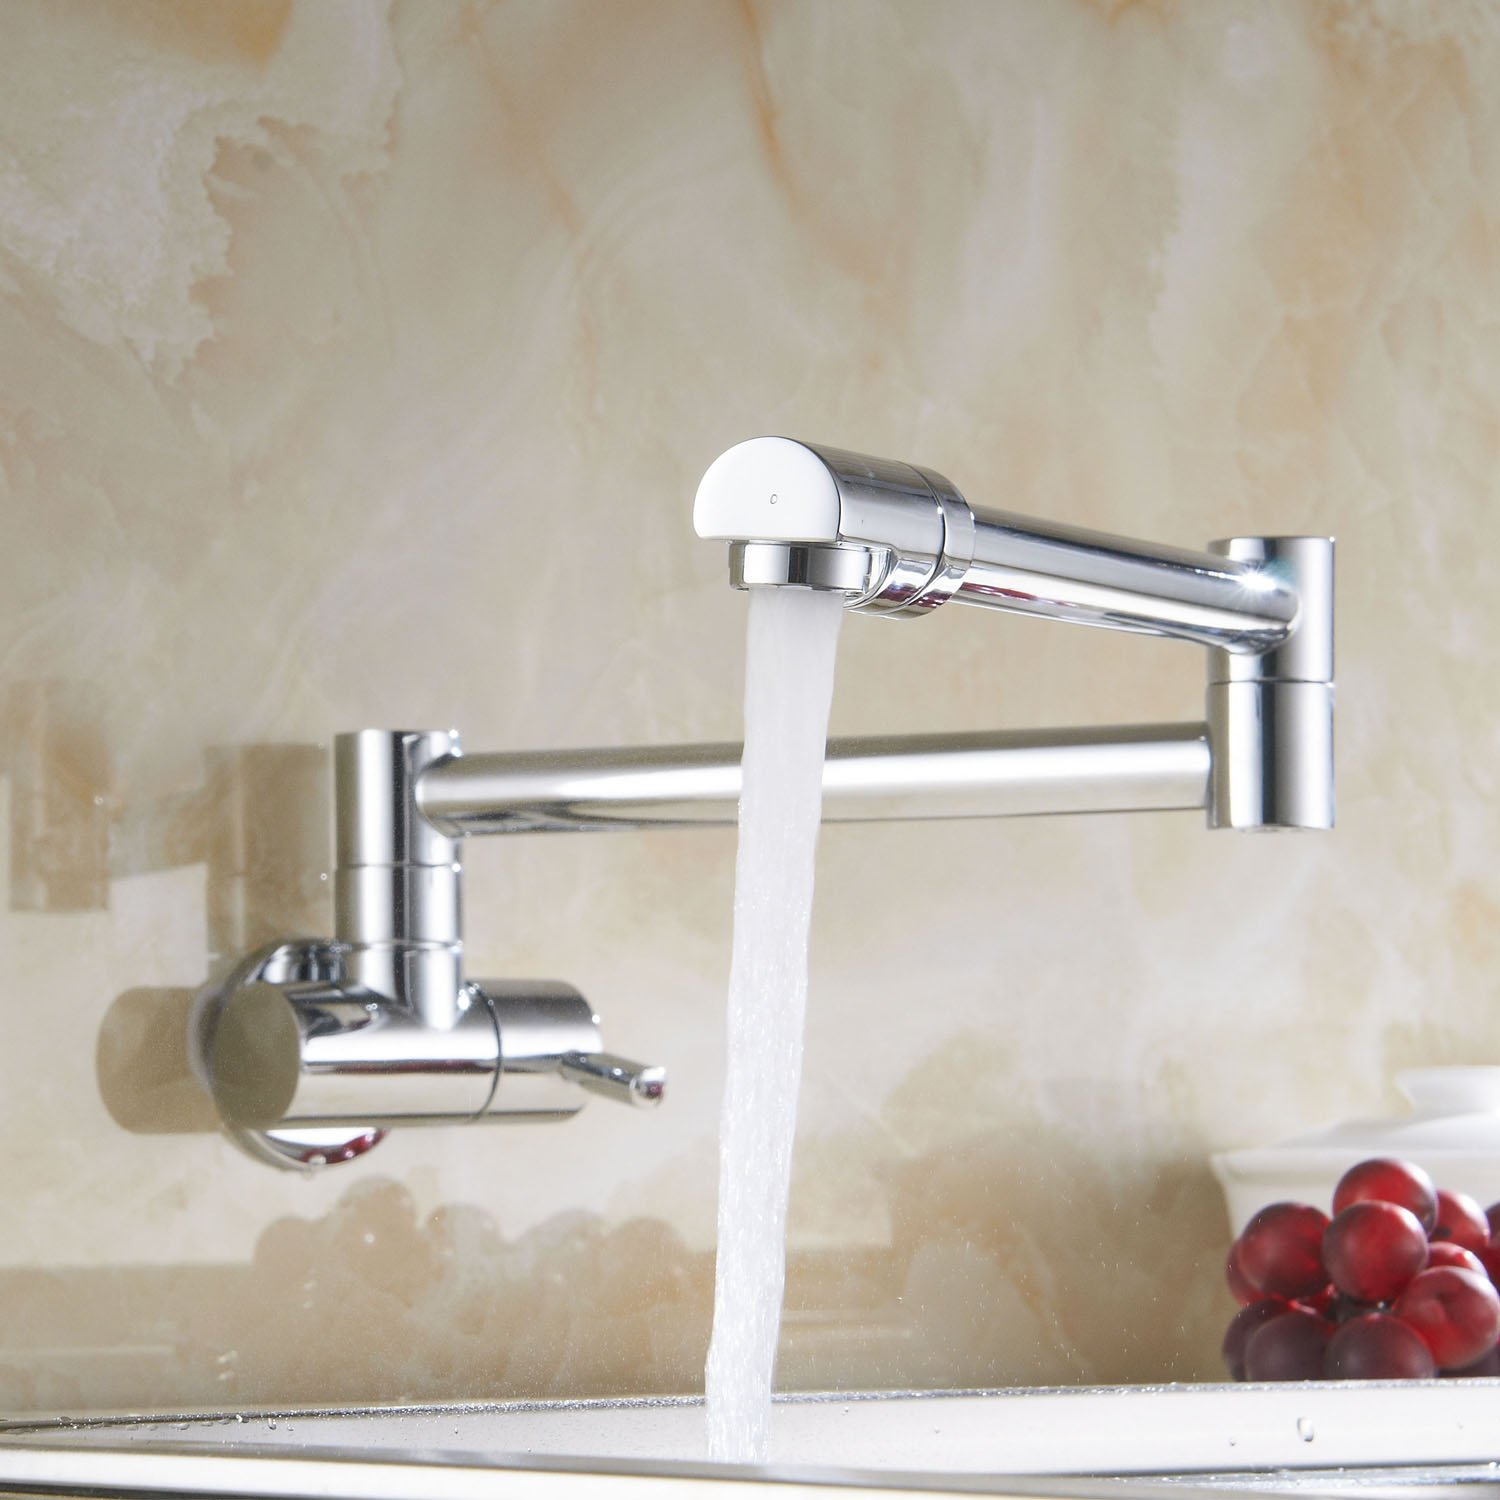 wall mount sink handles mounted american berwick faucets with lever standard widespread faucet bathroom